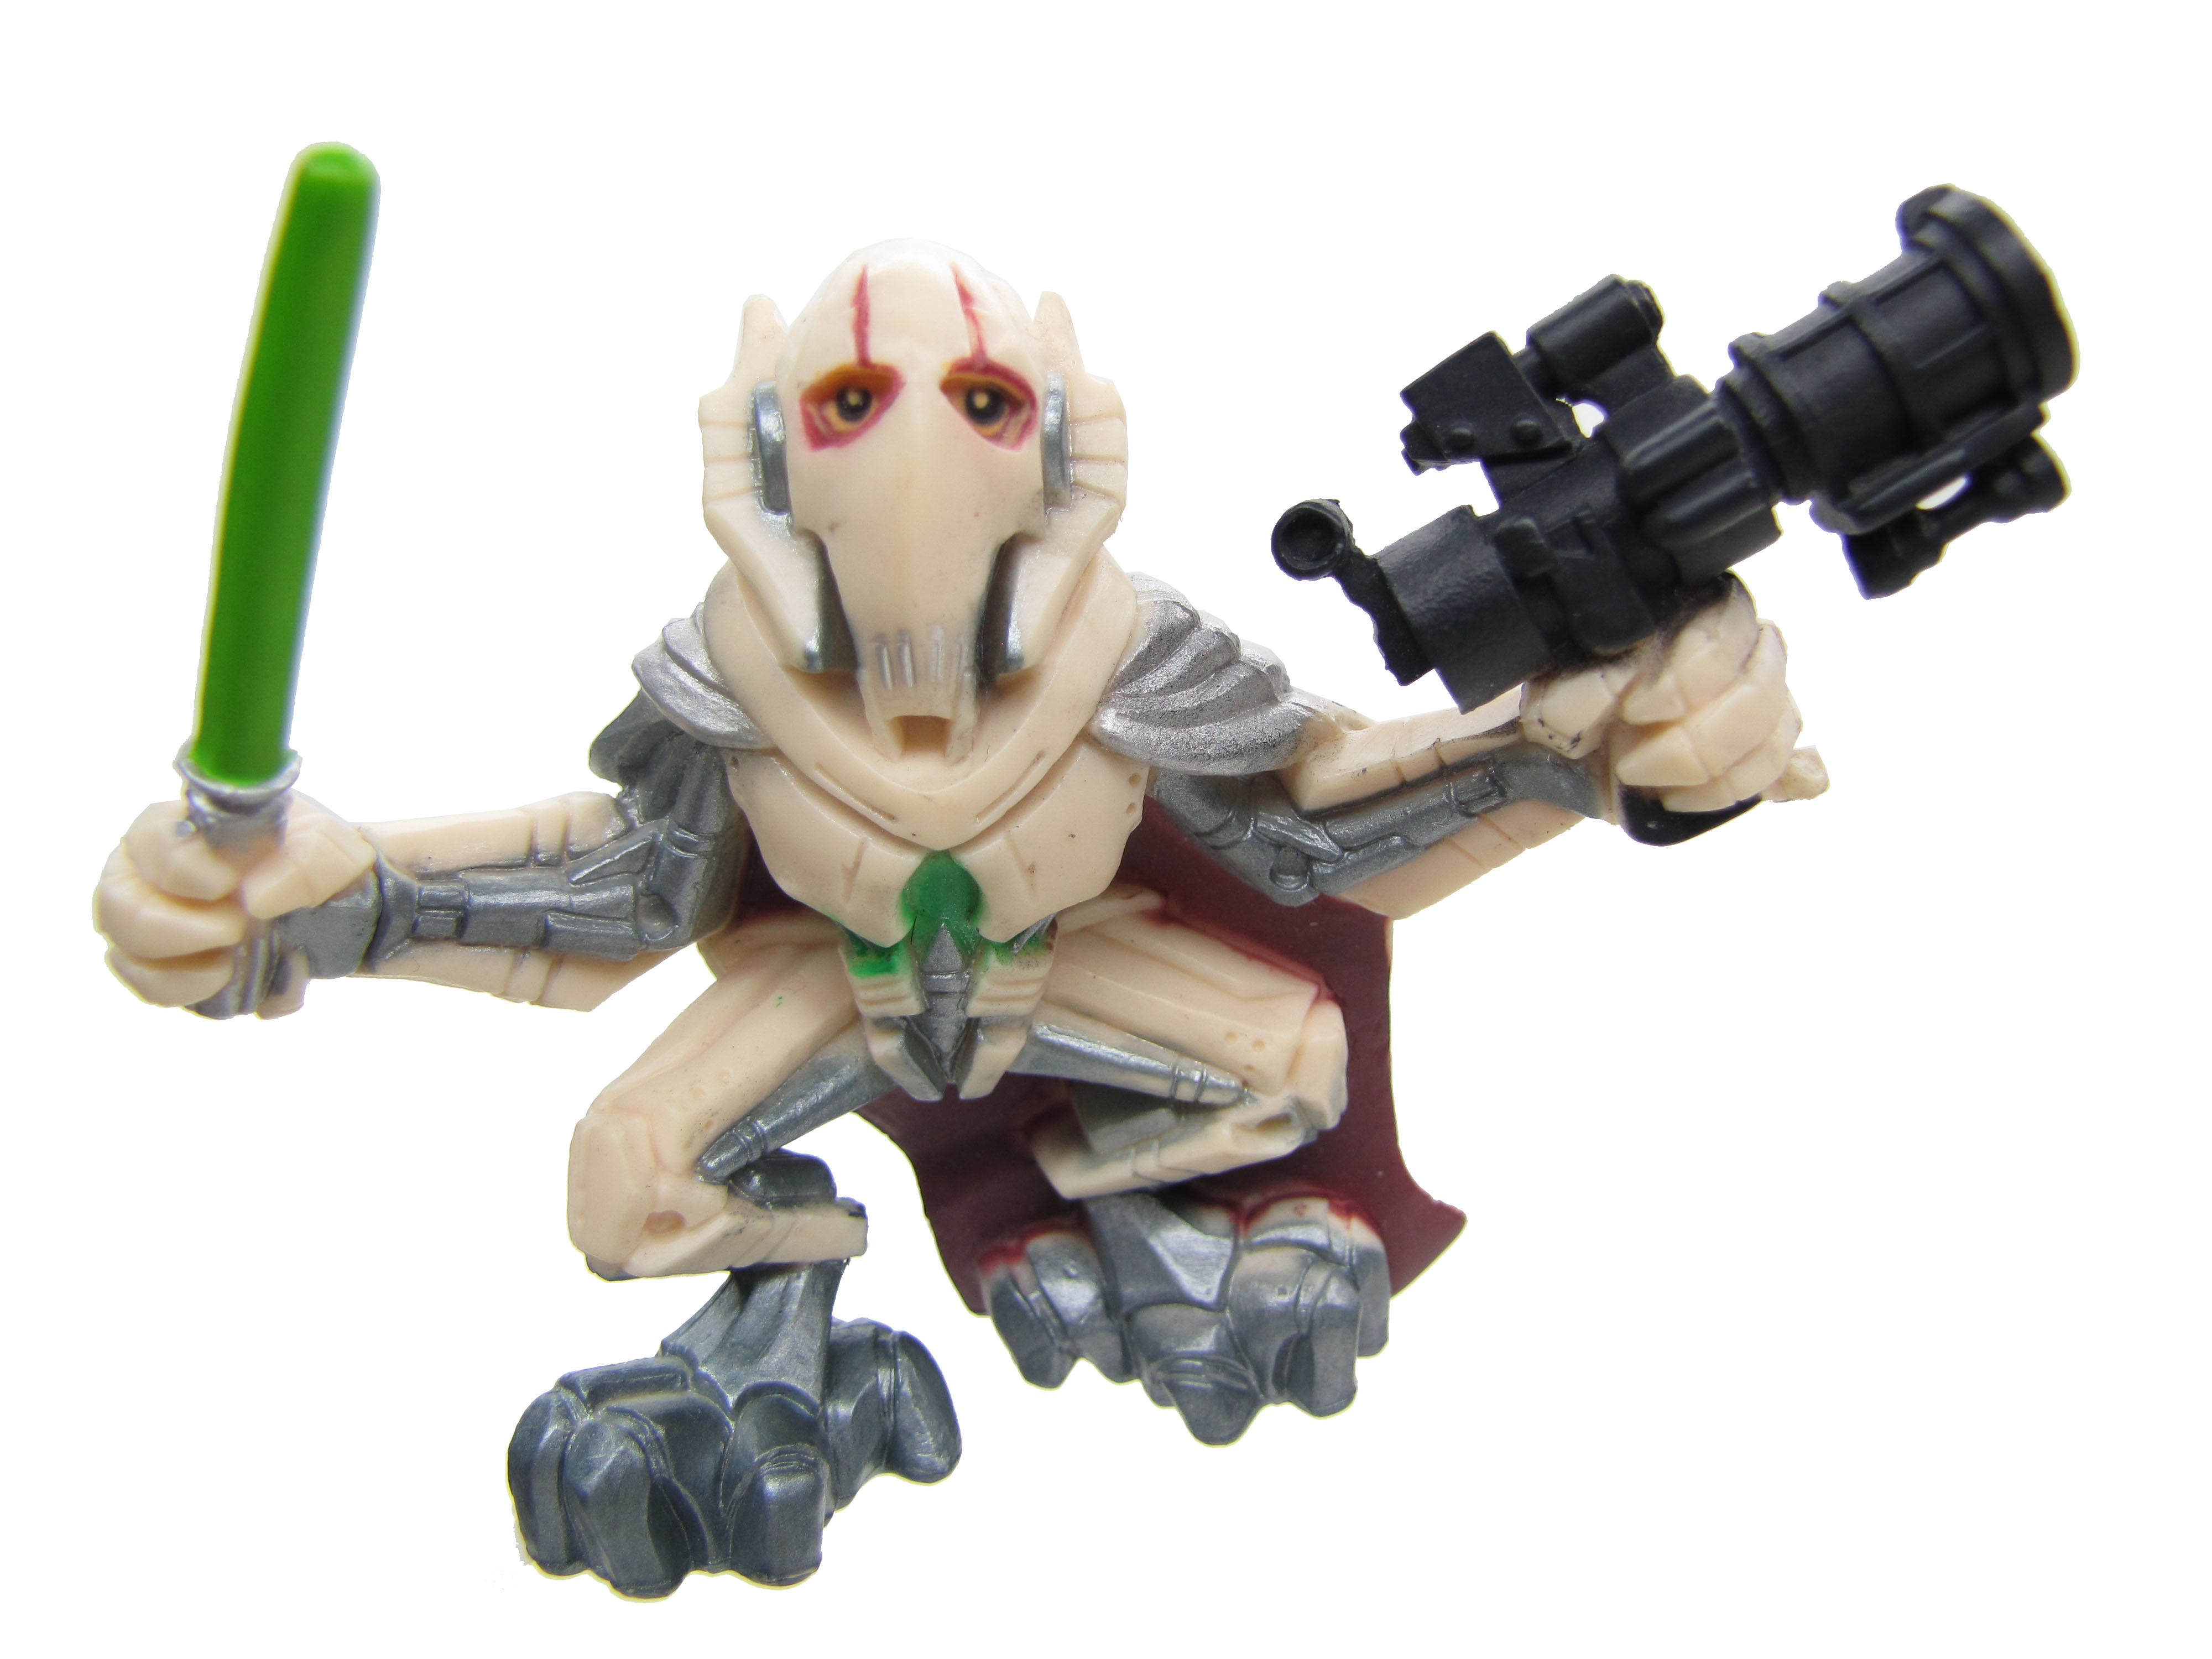 Star Wars Galactic Heroes General Grevious Revenge of the Sith